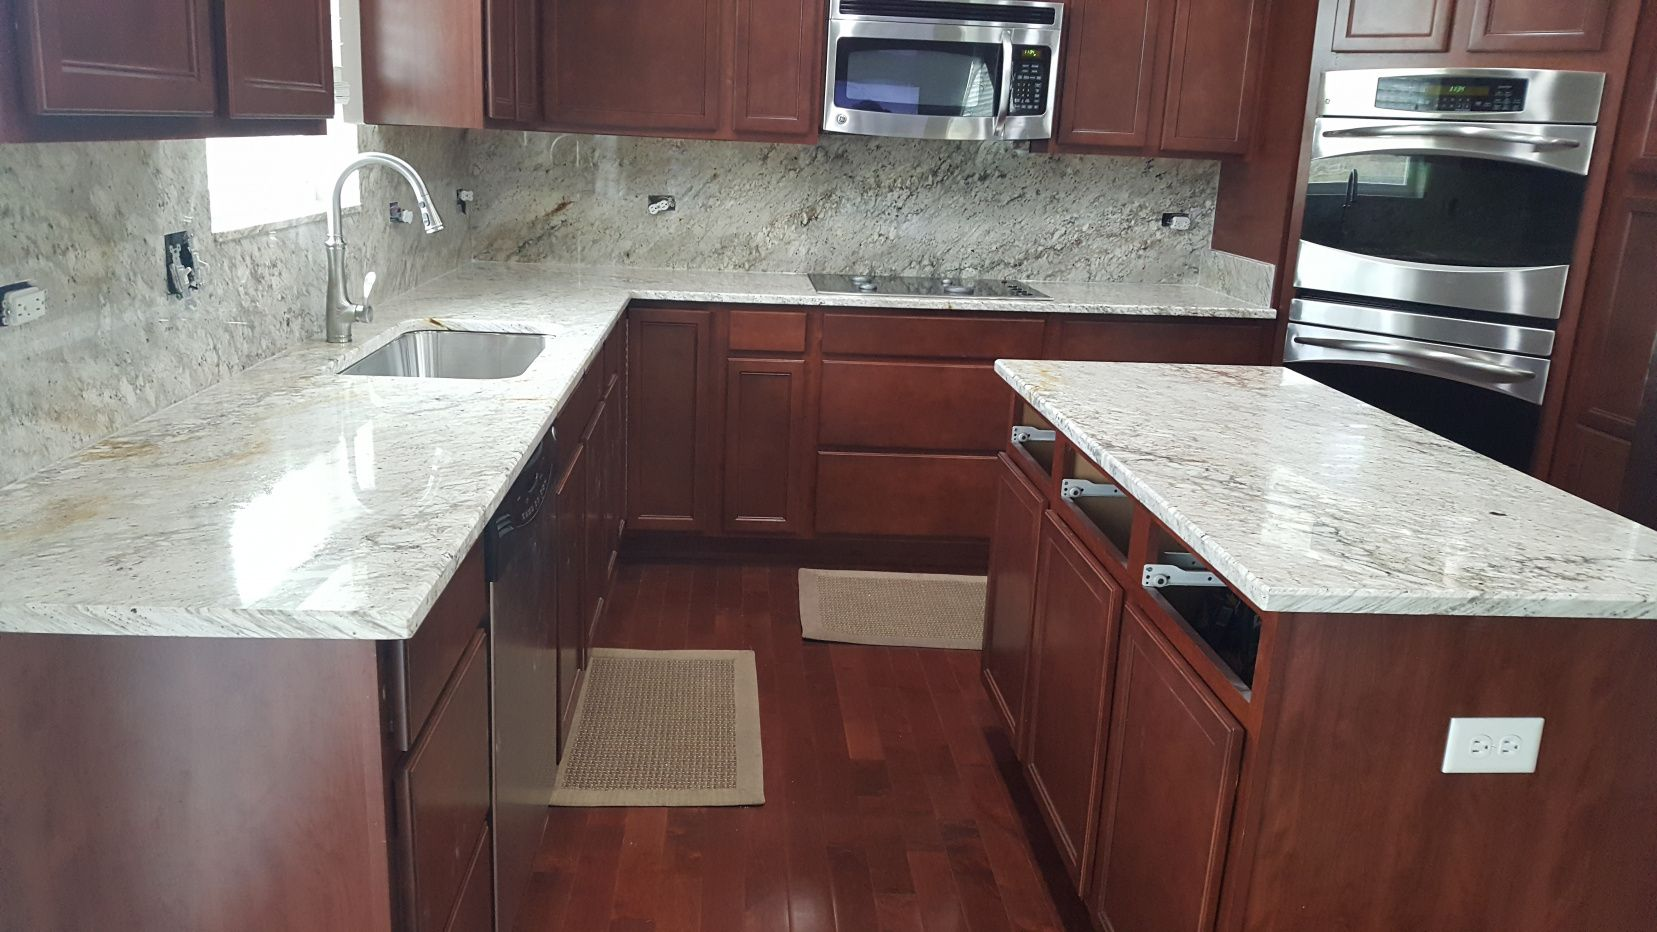 Merveilleux 50+ Granite Countertops Libertyville Il   Remodeling Ideas For Kitchens  Check More At Http: